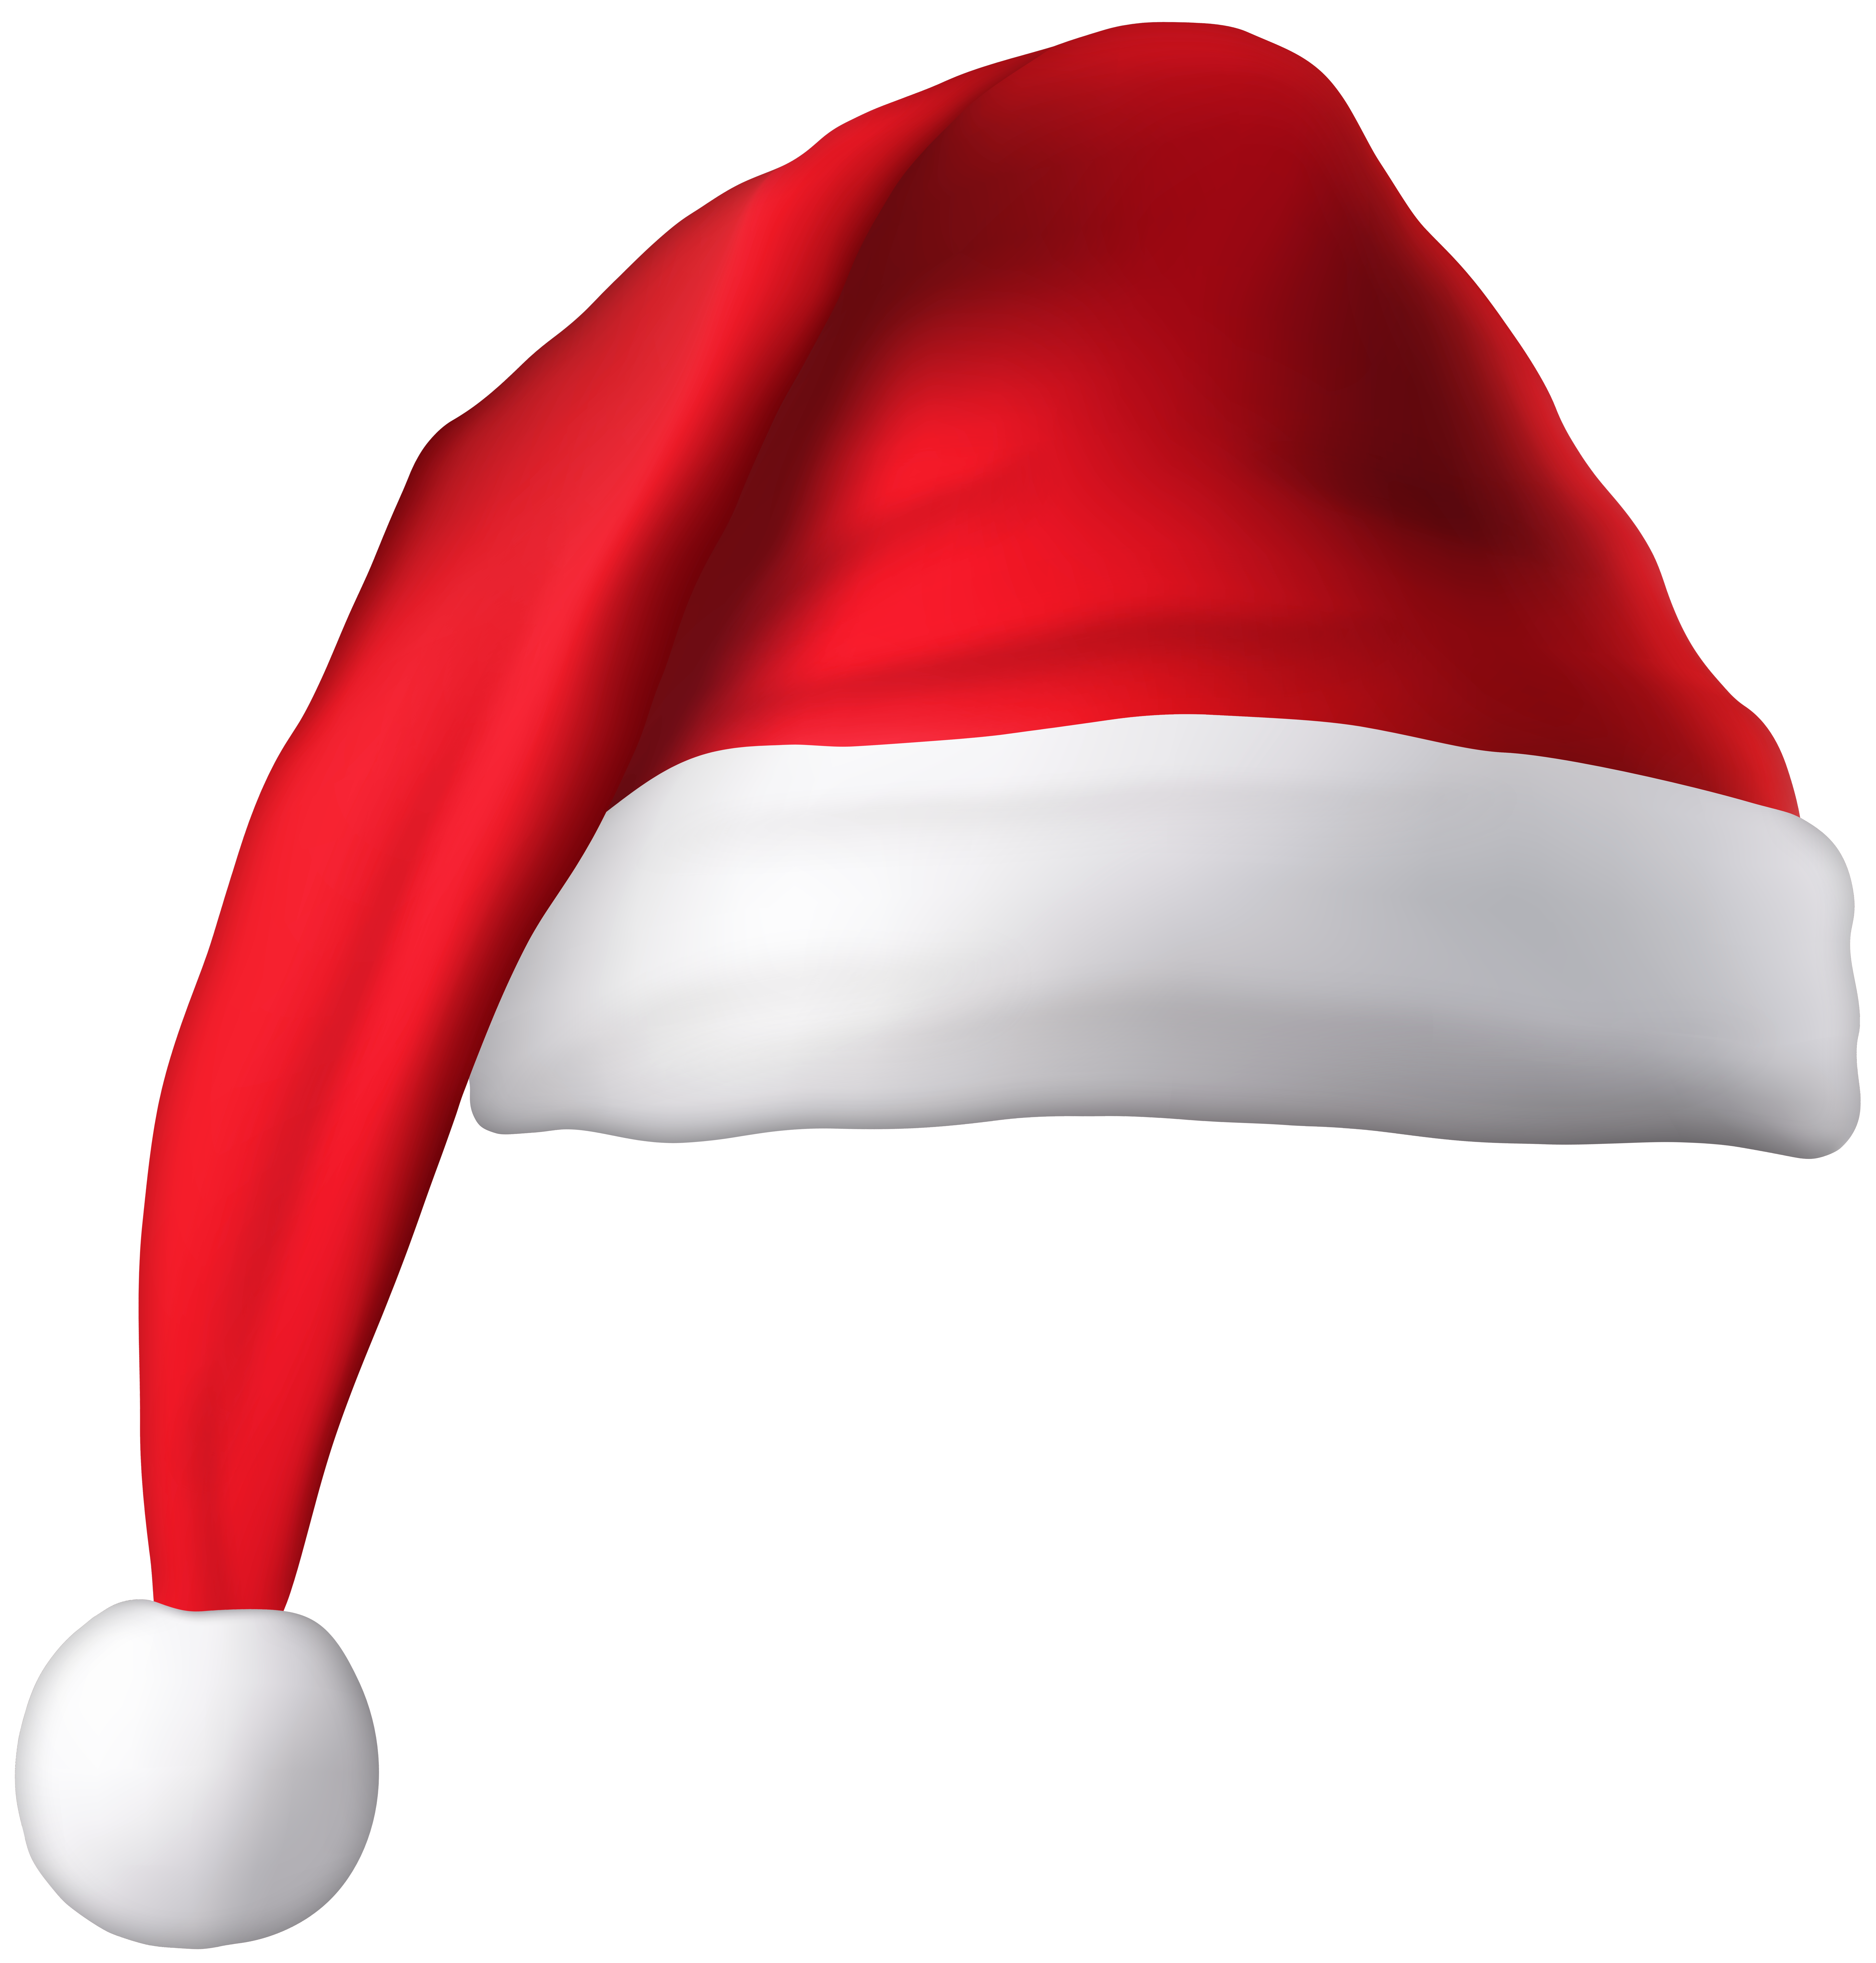 Red Christmas Santa Hat Clip Art Image.